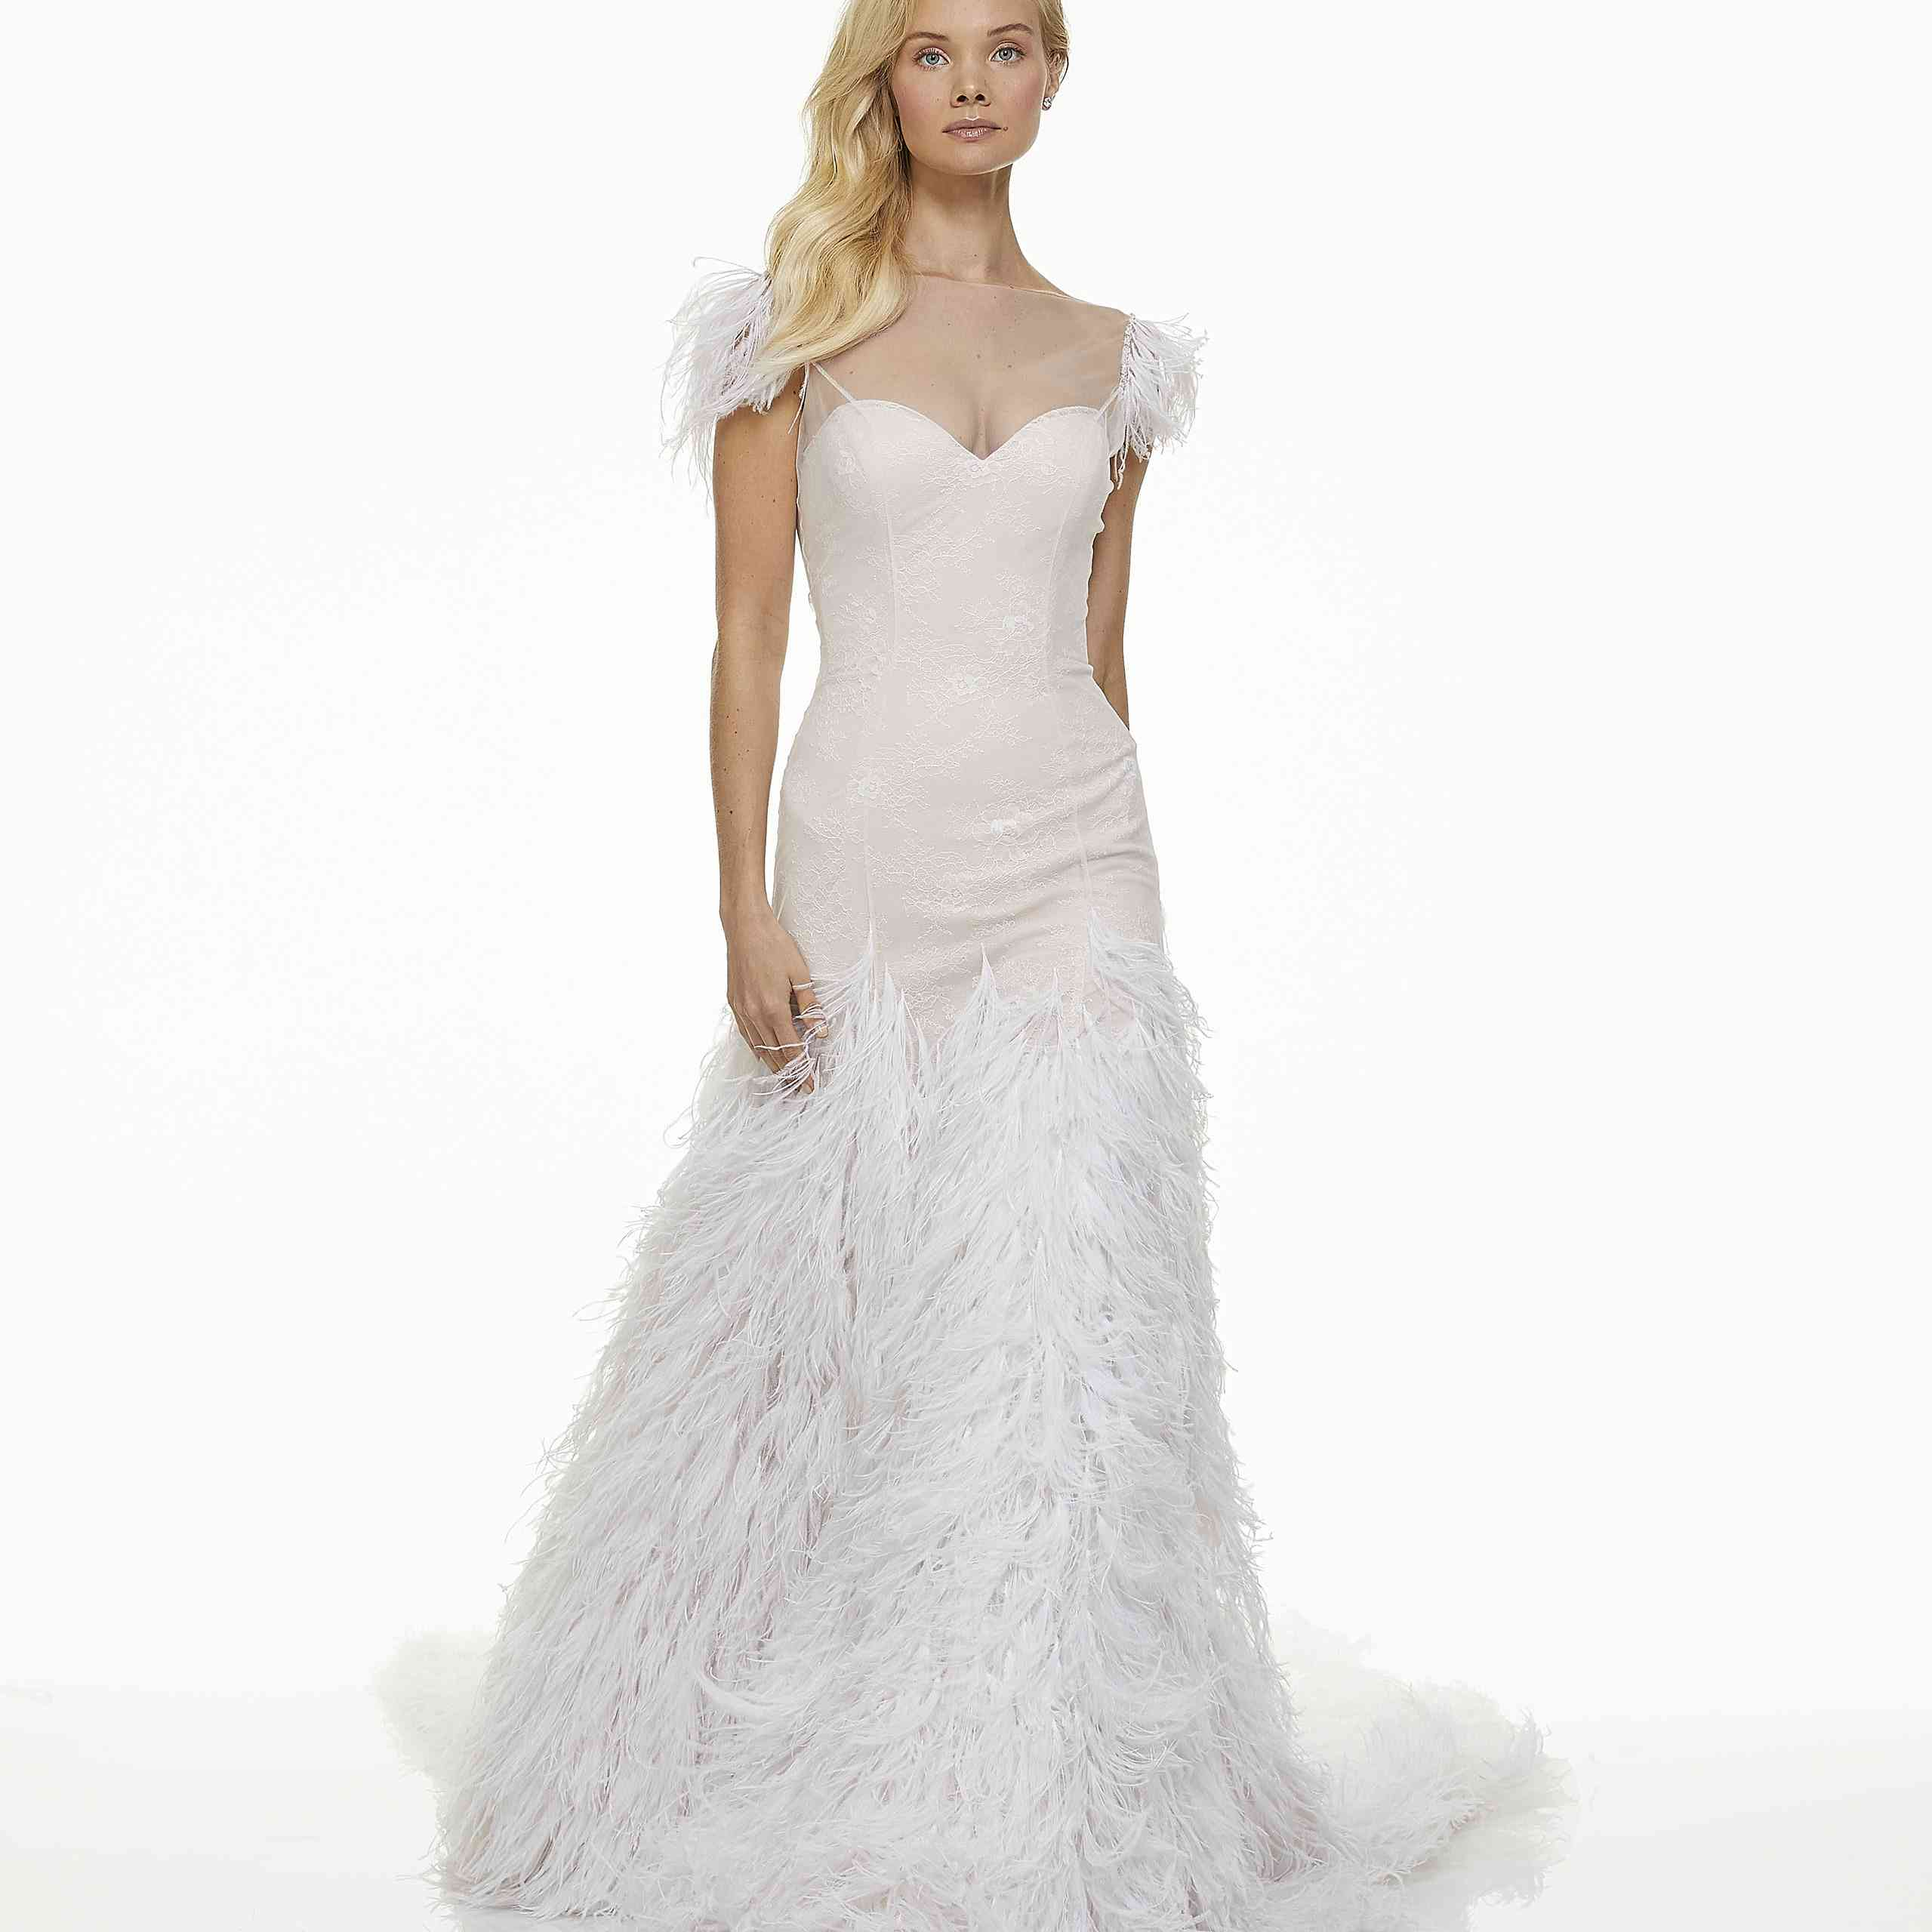 Model in feathered A-line wedding dress